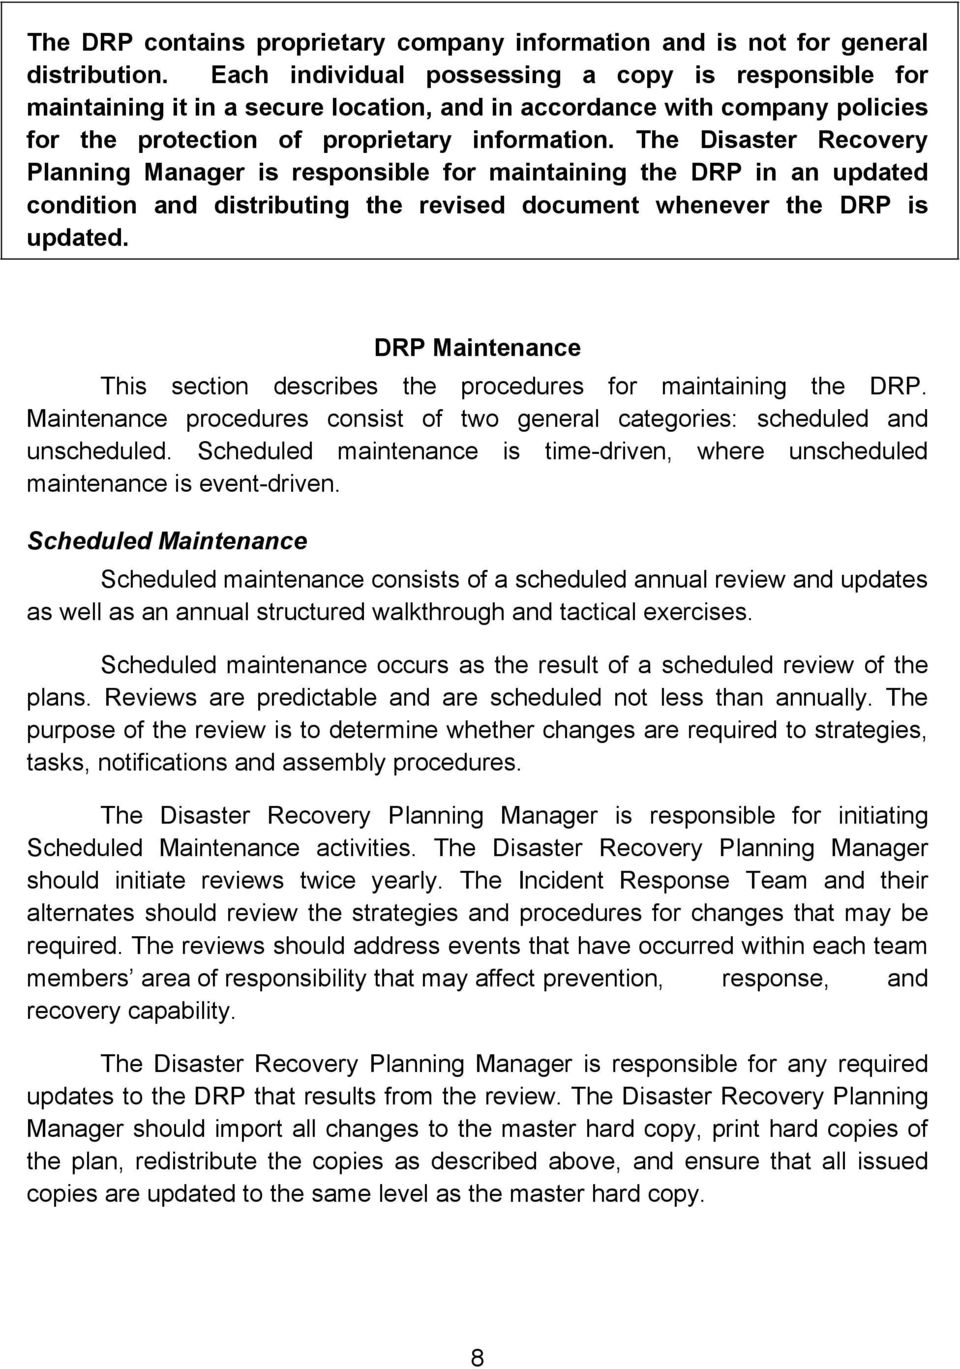 The Disaster Recovery Planning Manager is responsible for maintaining the DRP in an updated condition and distributing the revised document whenever the DRP is updated.